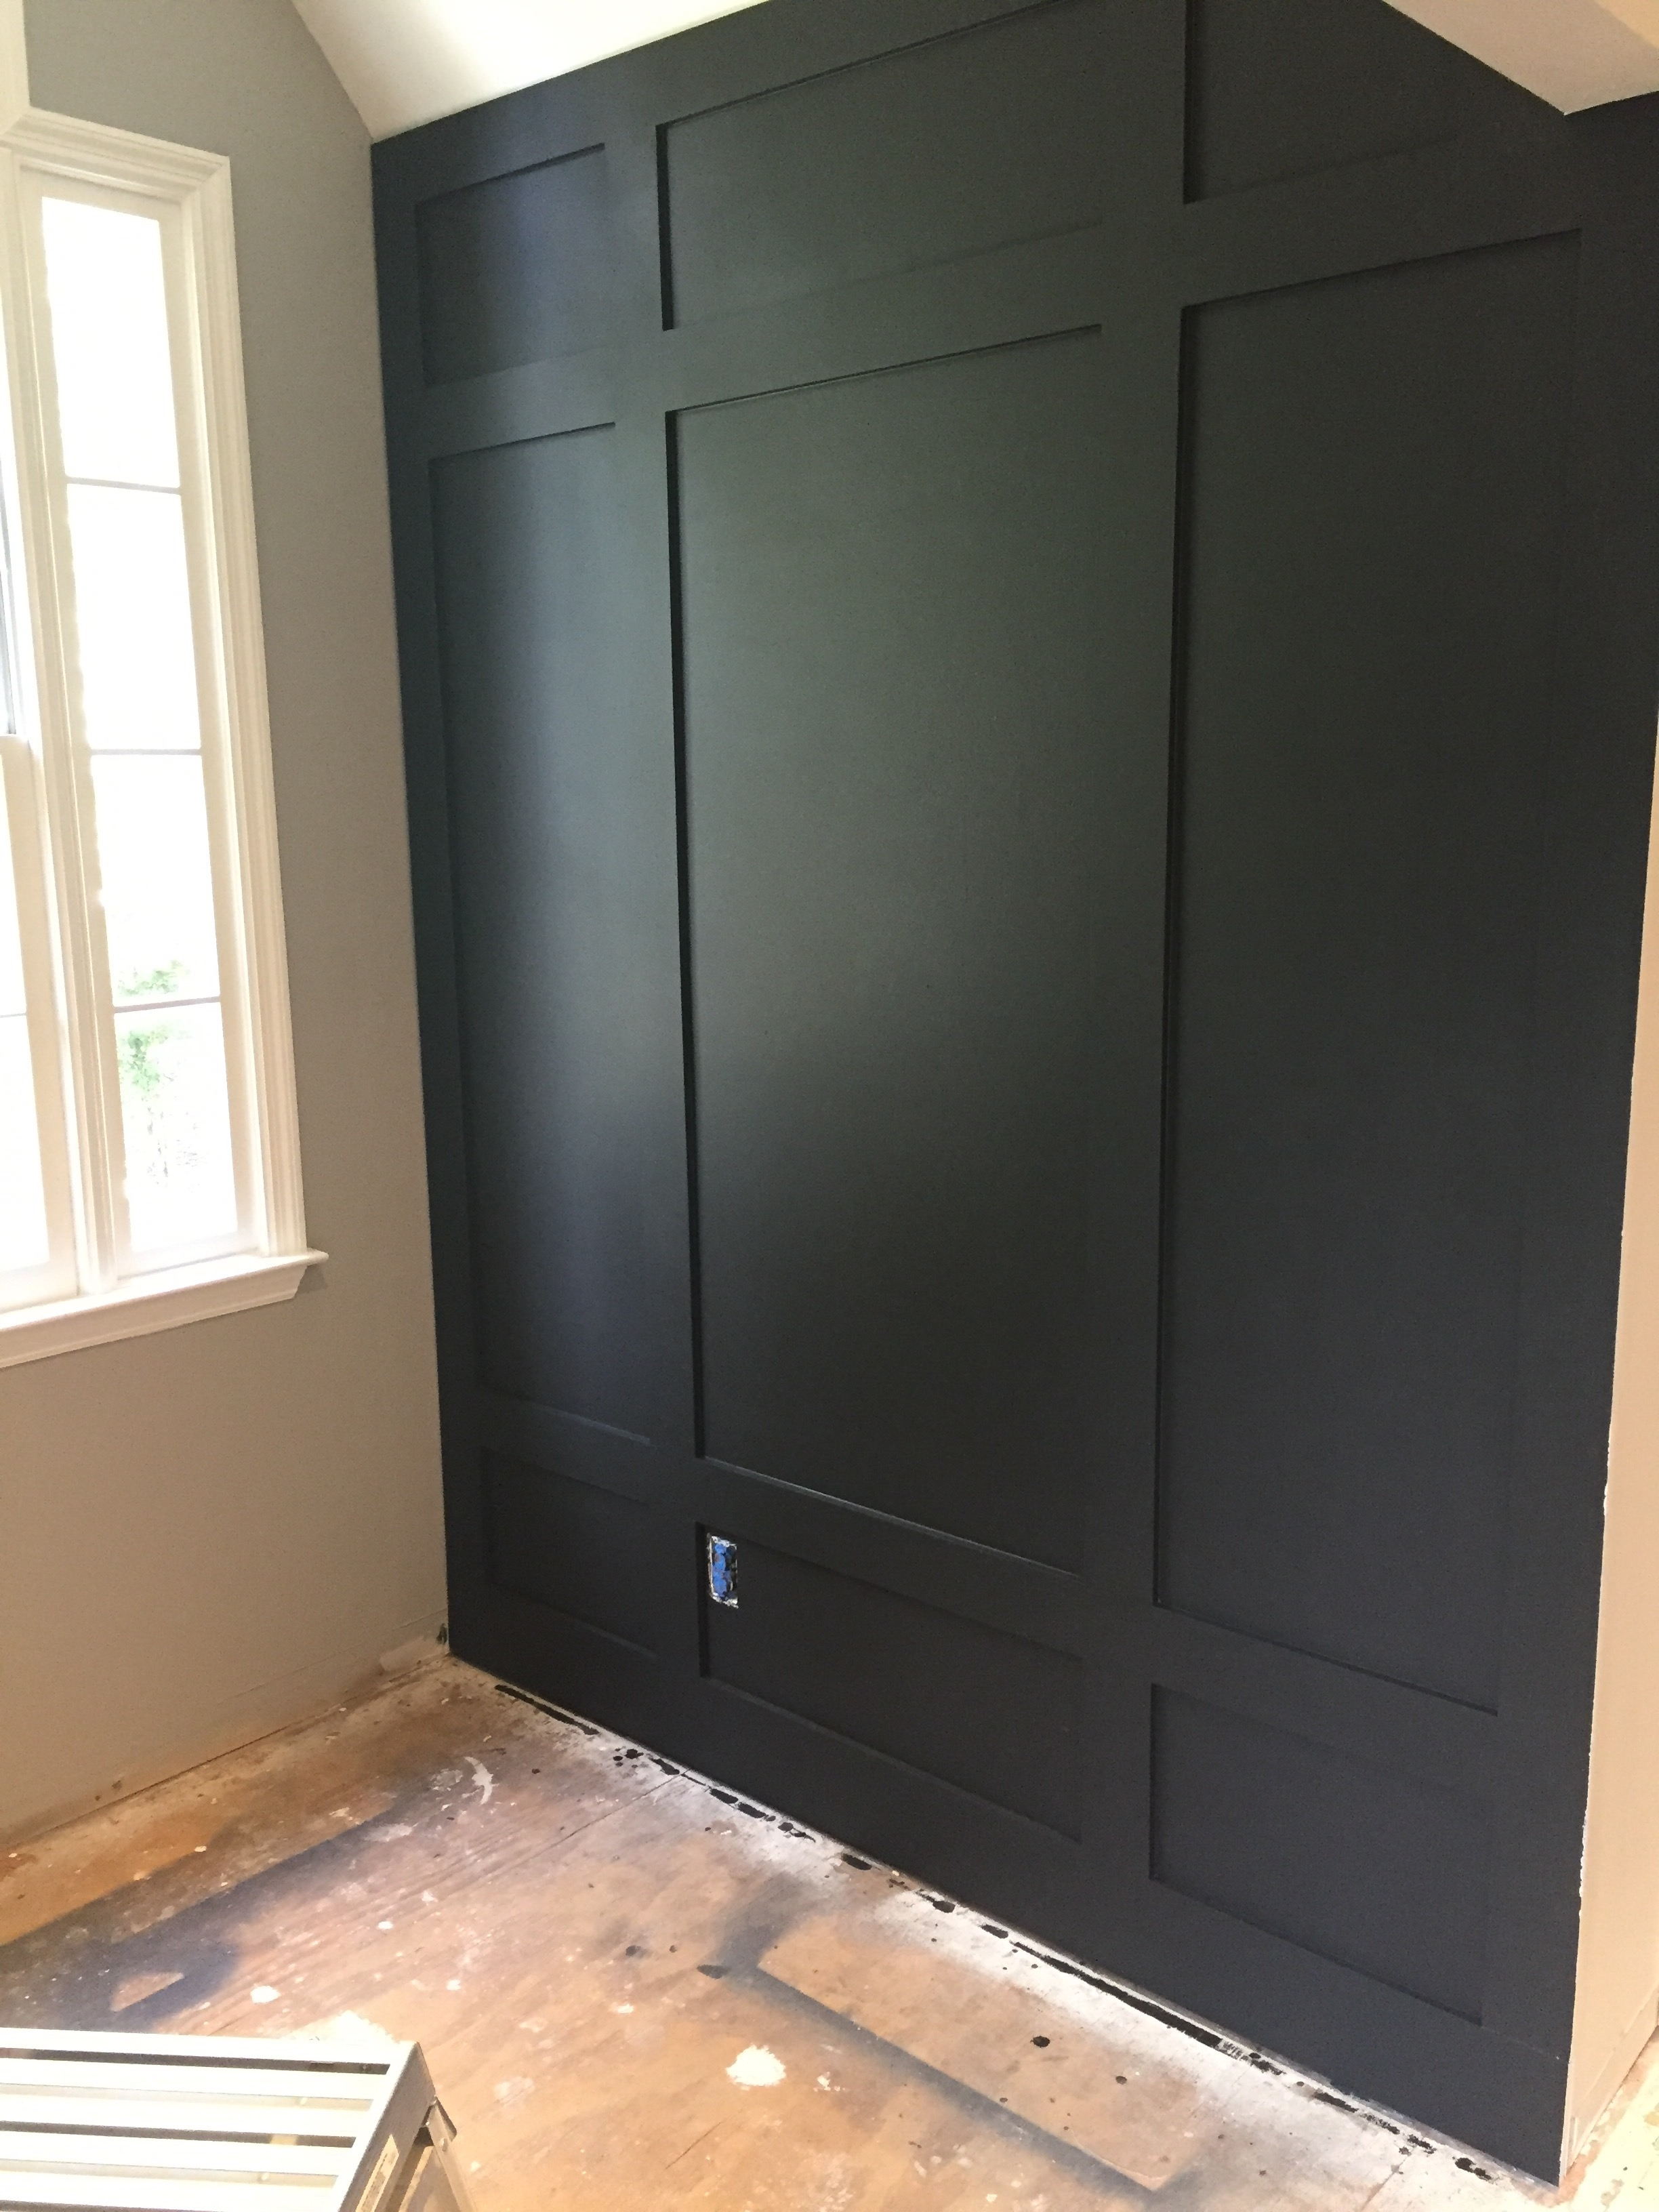 DIY board and batten walls for my bonus room makeover. Benjamin Moore Mopboard Black | Board and Batten | Wood trim detail | Before and after